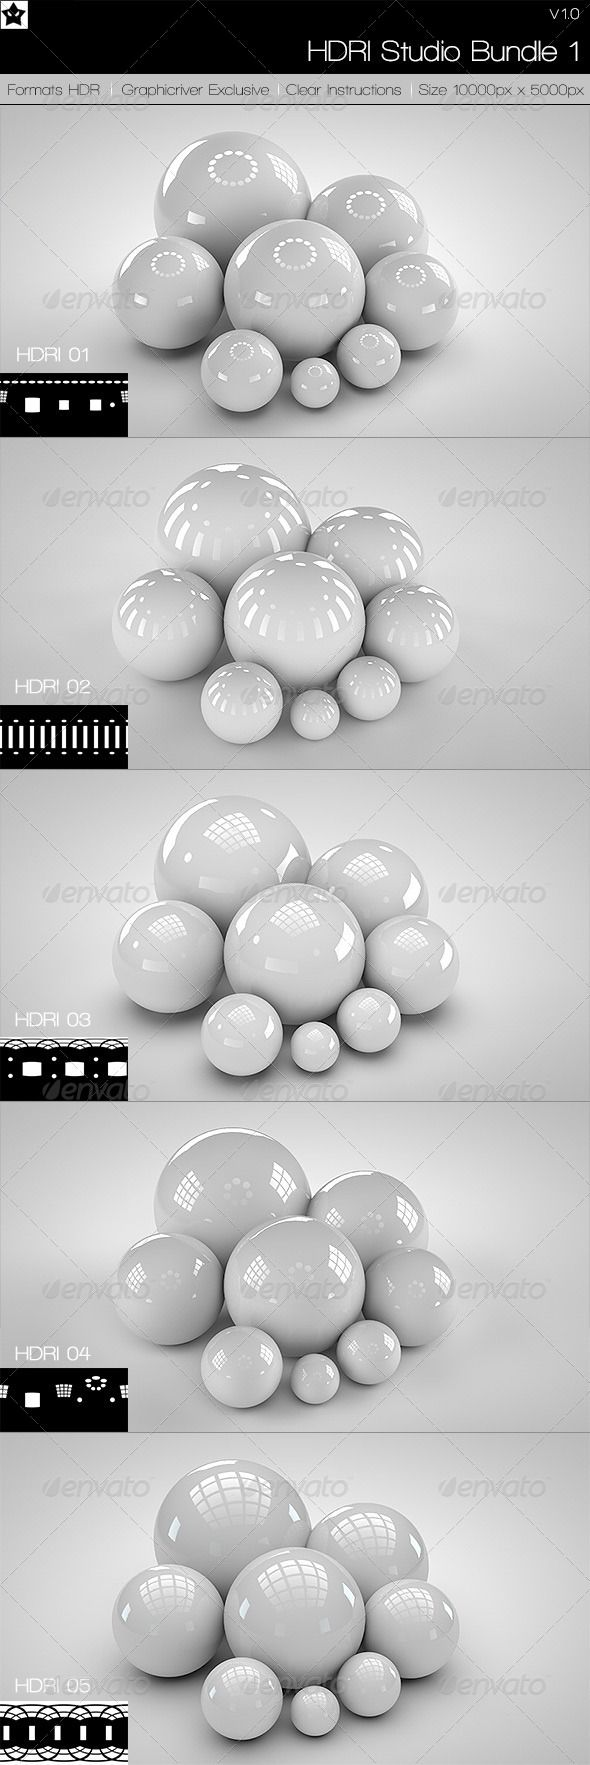 5 realistic Studio HDRI Budle 1 - 3DOcean Item for Sale